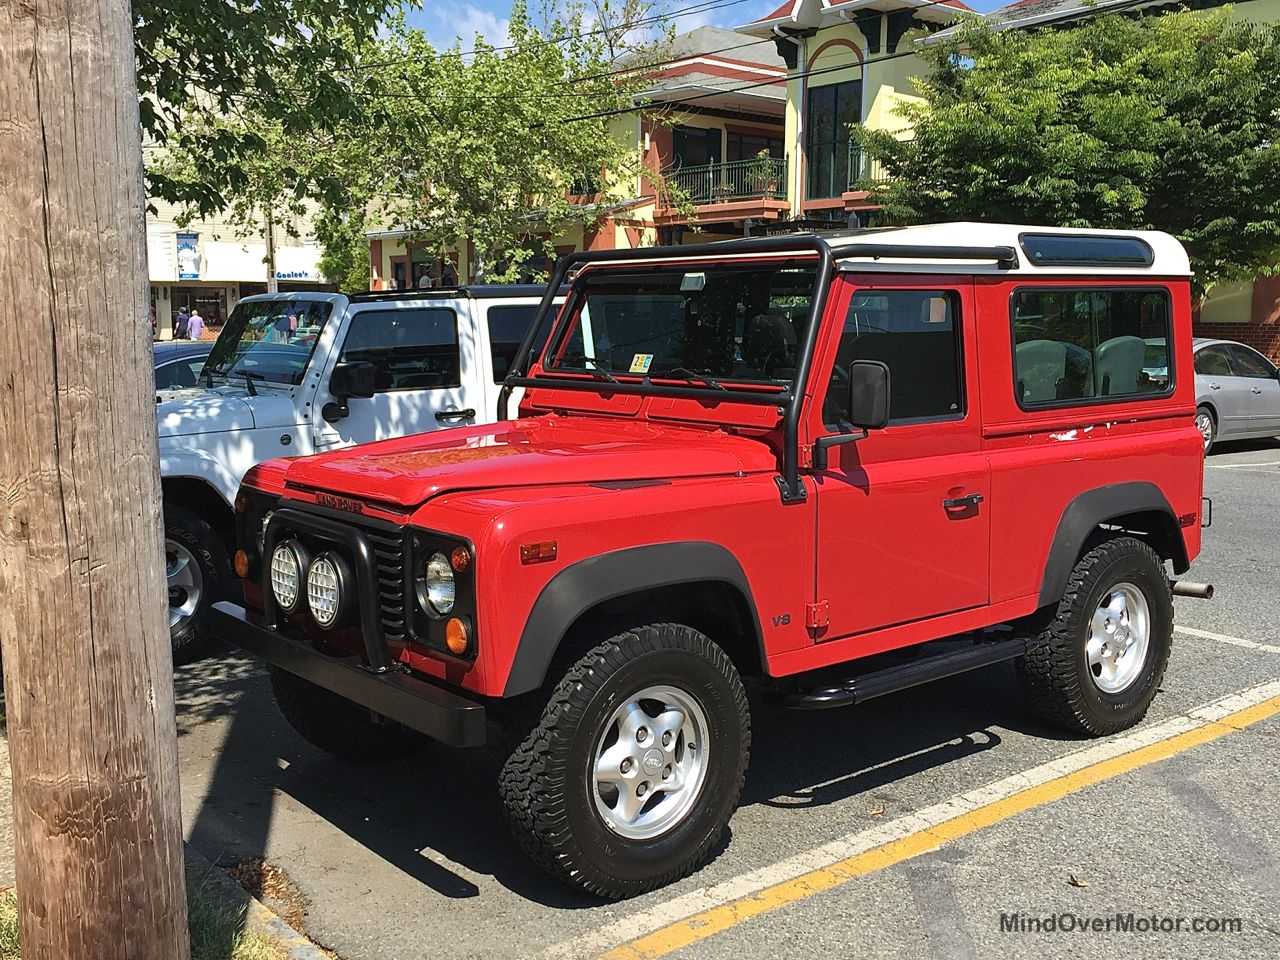 Land Rover Defender in Rehoboth Beach, Delaware